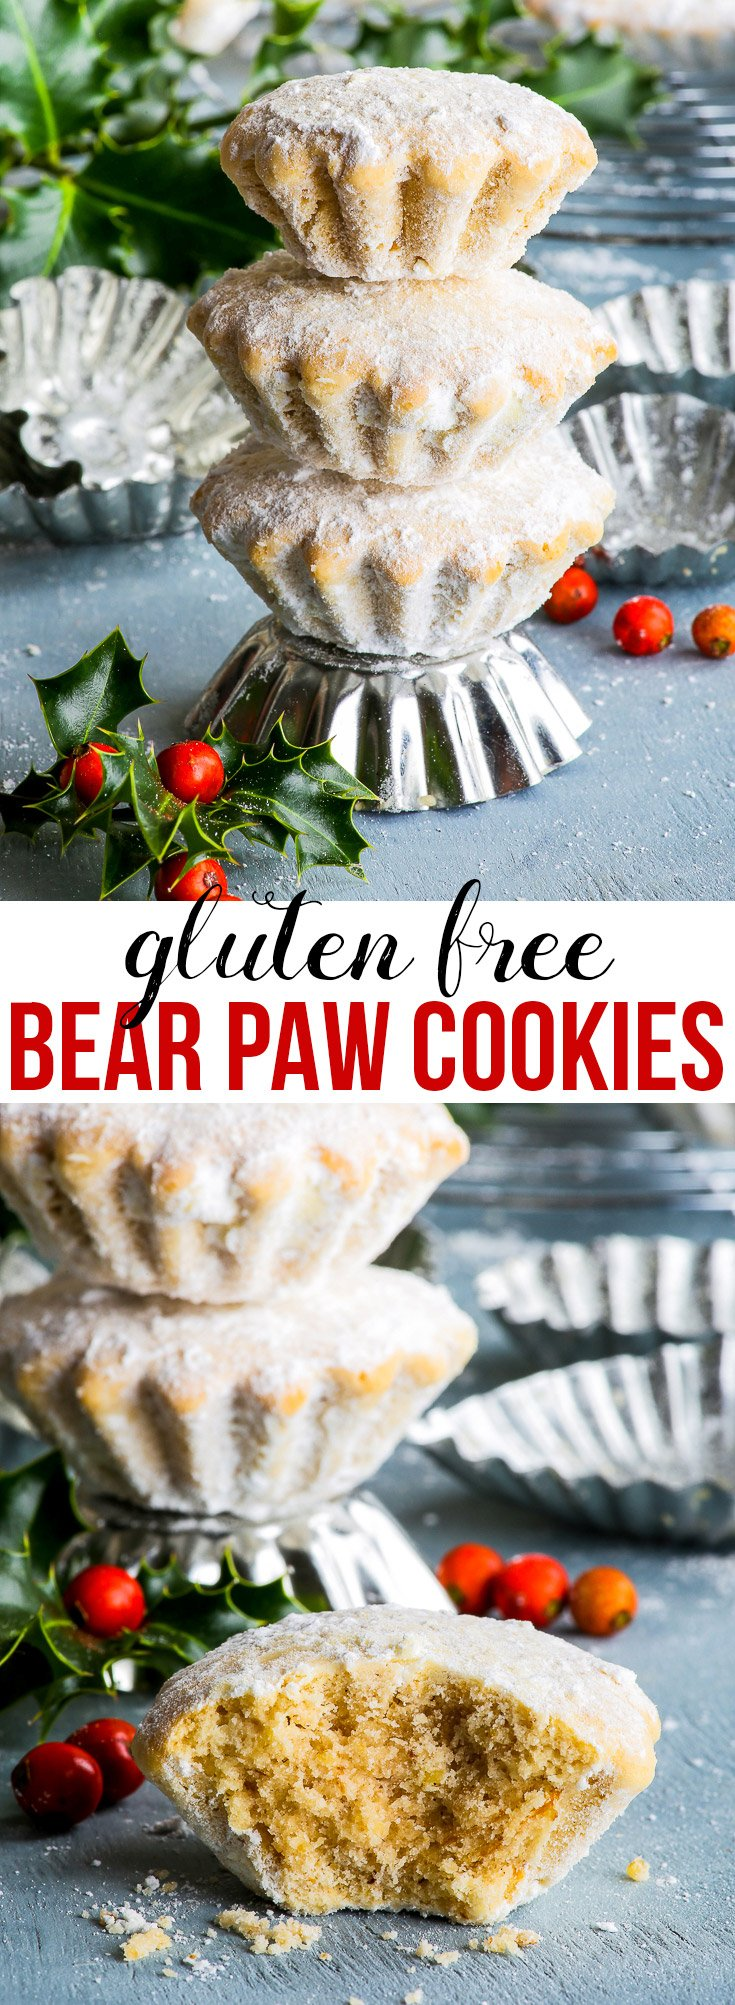 Gluten Free Croatian Bear Paw Cookies - These wonderful Croatian bear paw cookies are a Christmas favourite in our house – buttery, sweet, rich and so incredibly aromatic! A gluten free variation on a traditional Croatian cookie recipe, this is bound to become your favourite Christmas cookies recipe.